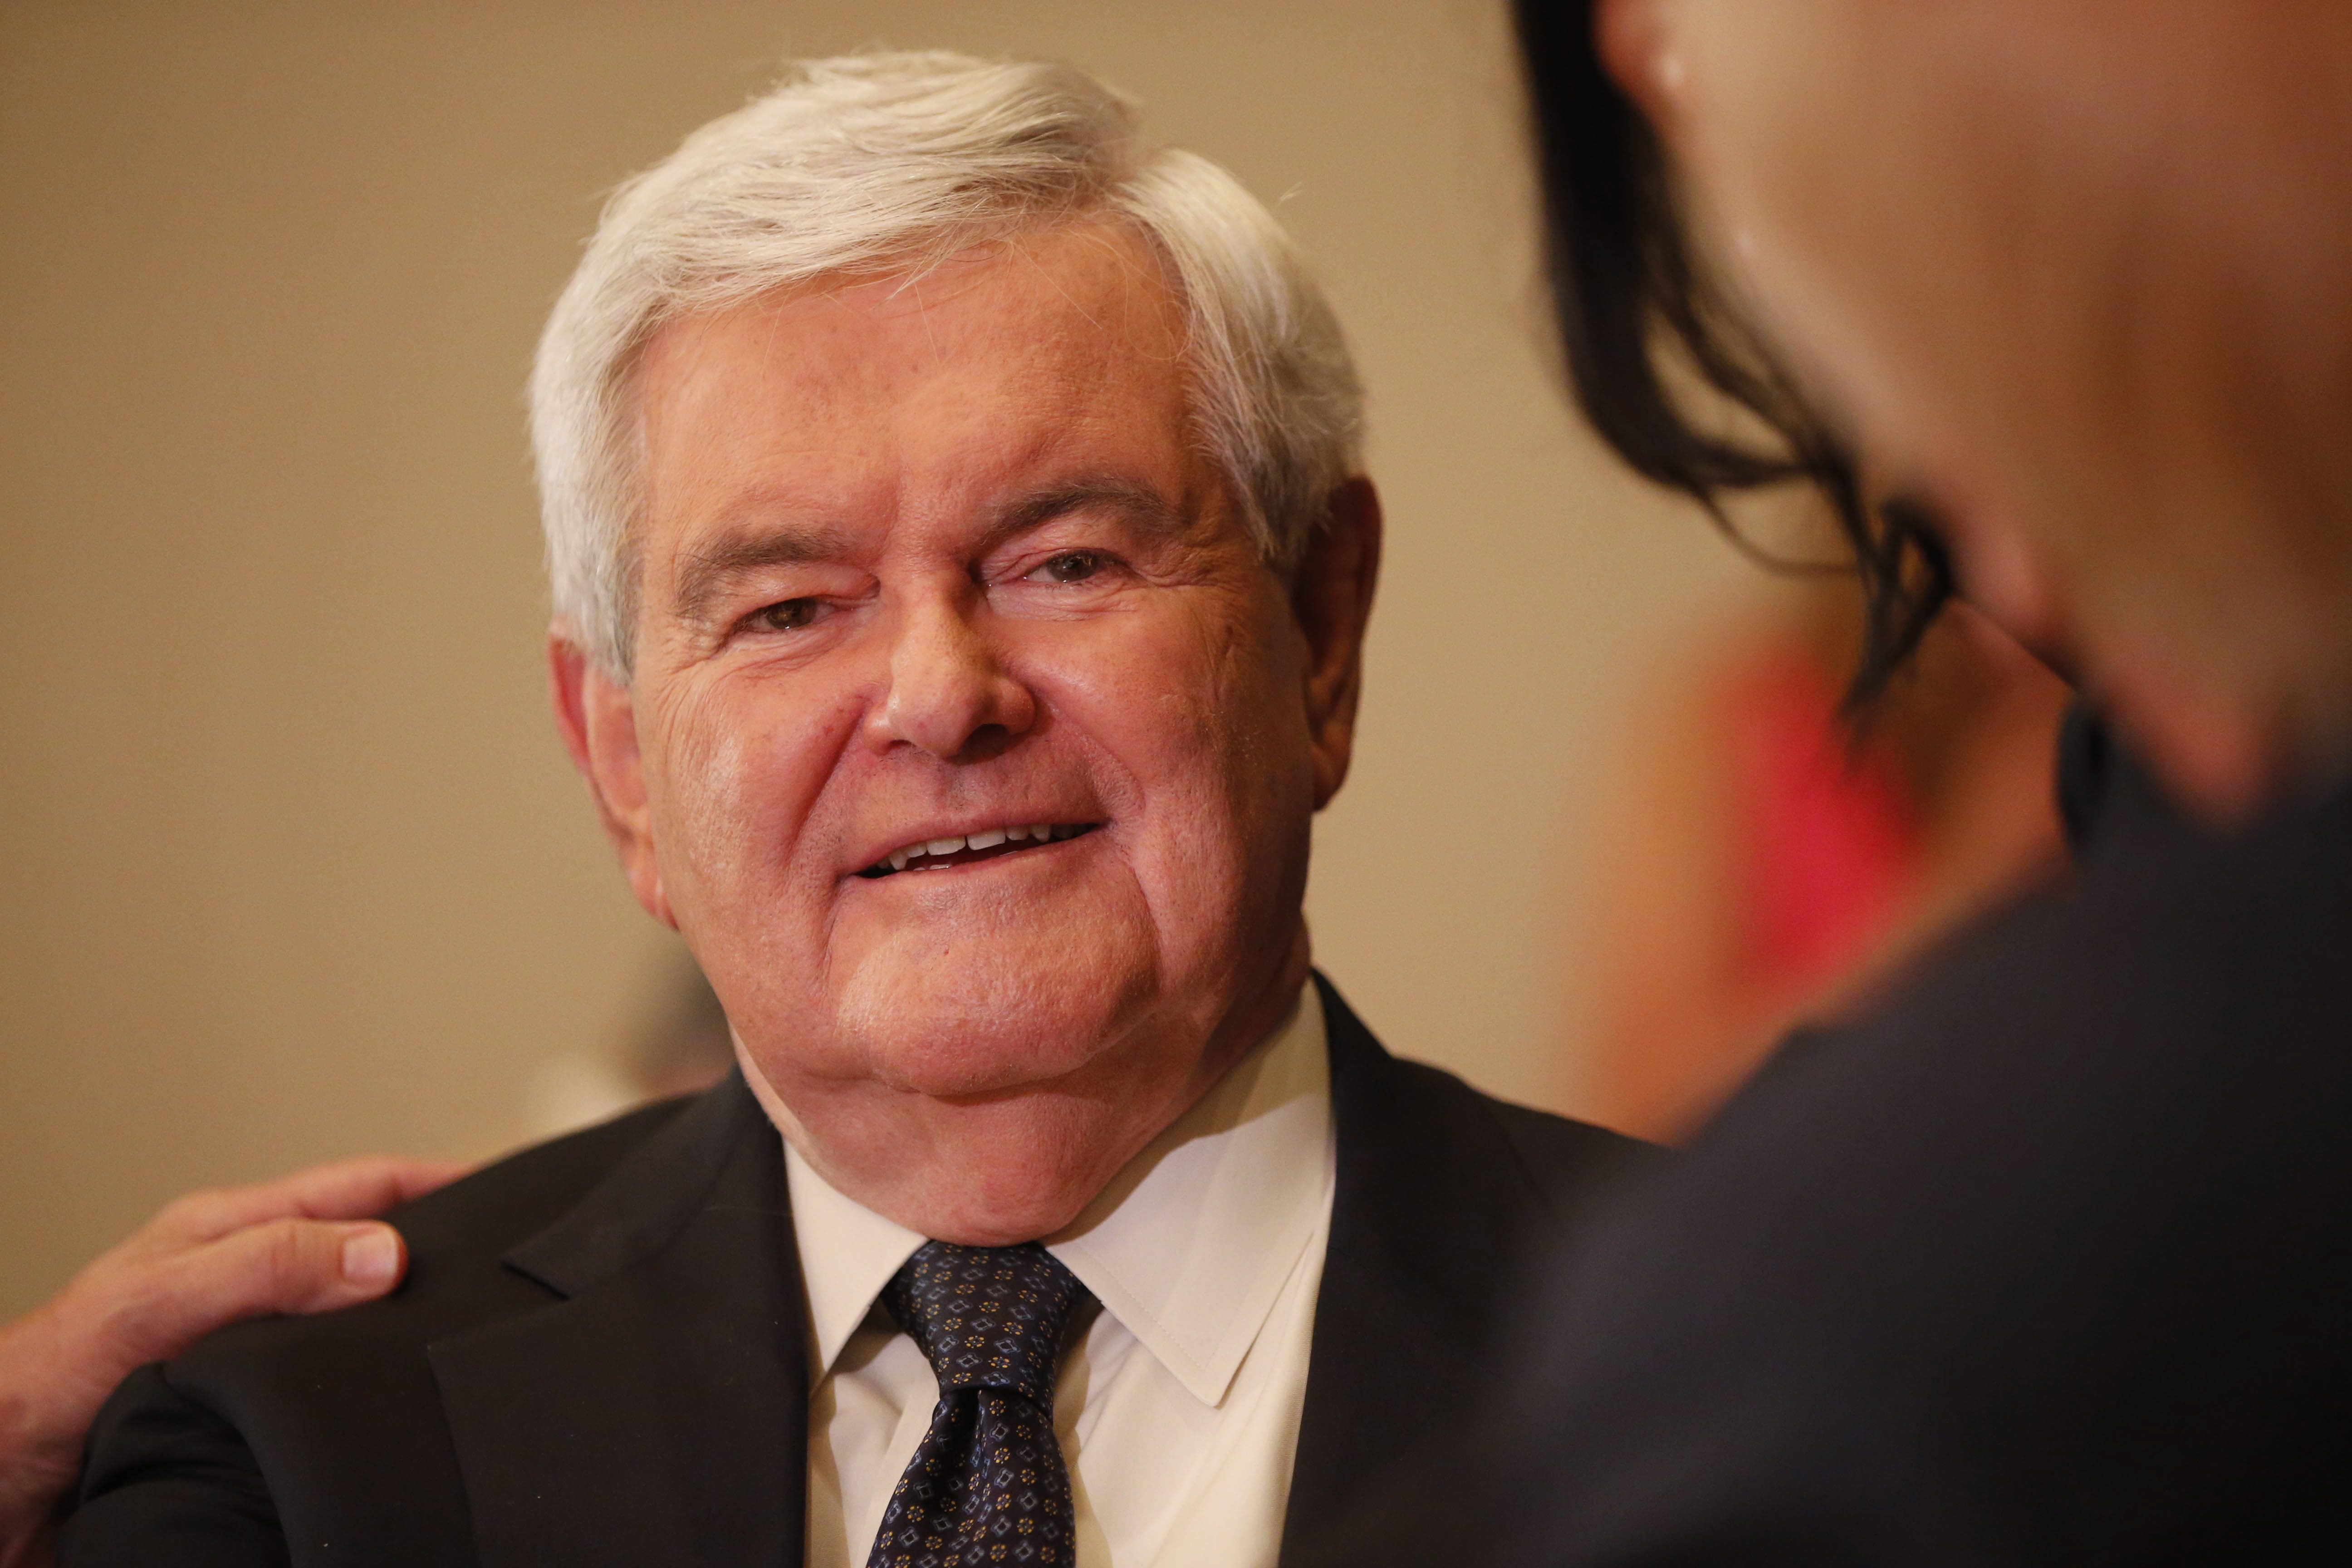 Former House Speaker Newt Gingrich mingles during the New York delegation breakfast at the Renaissance Hotel in Cleveland on July 18. (Derek Gee/Buffalo News)